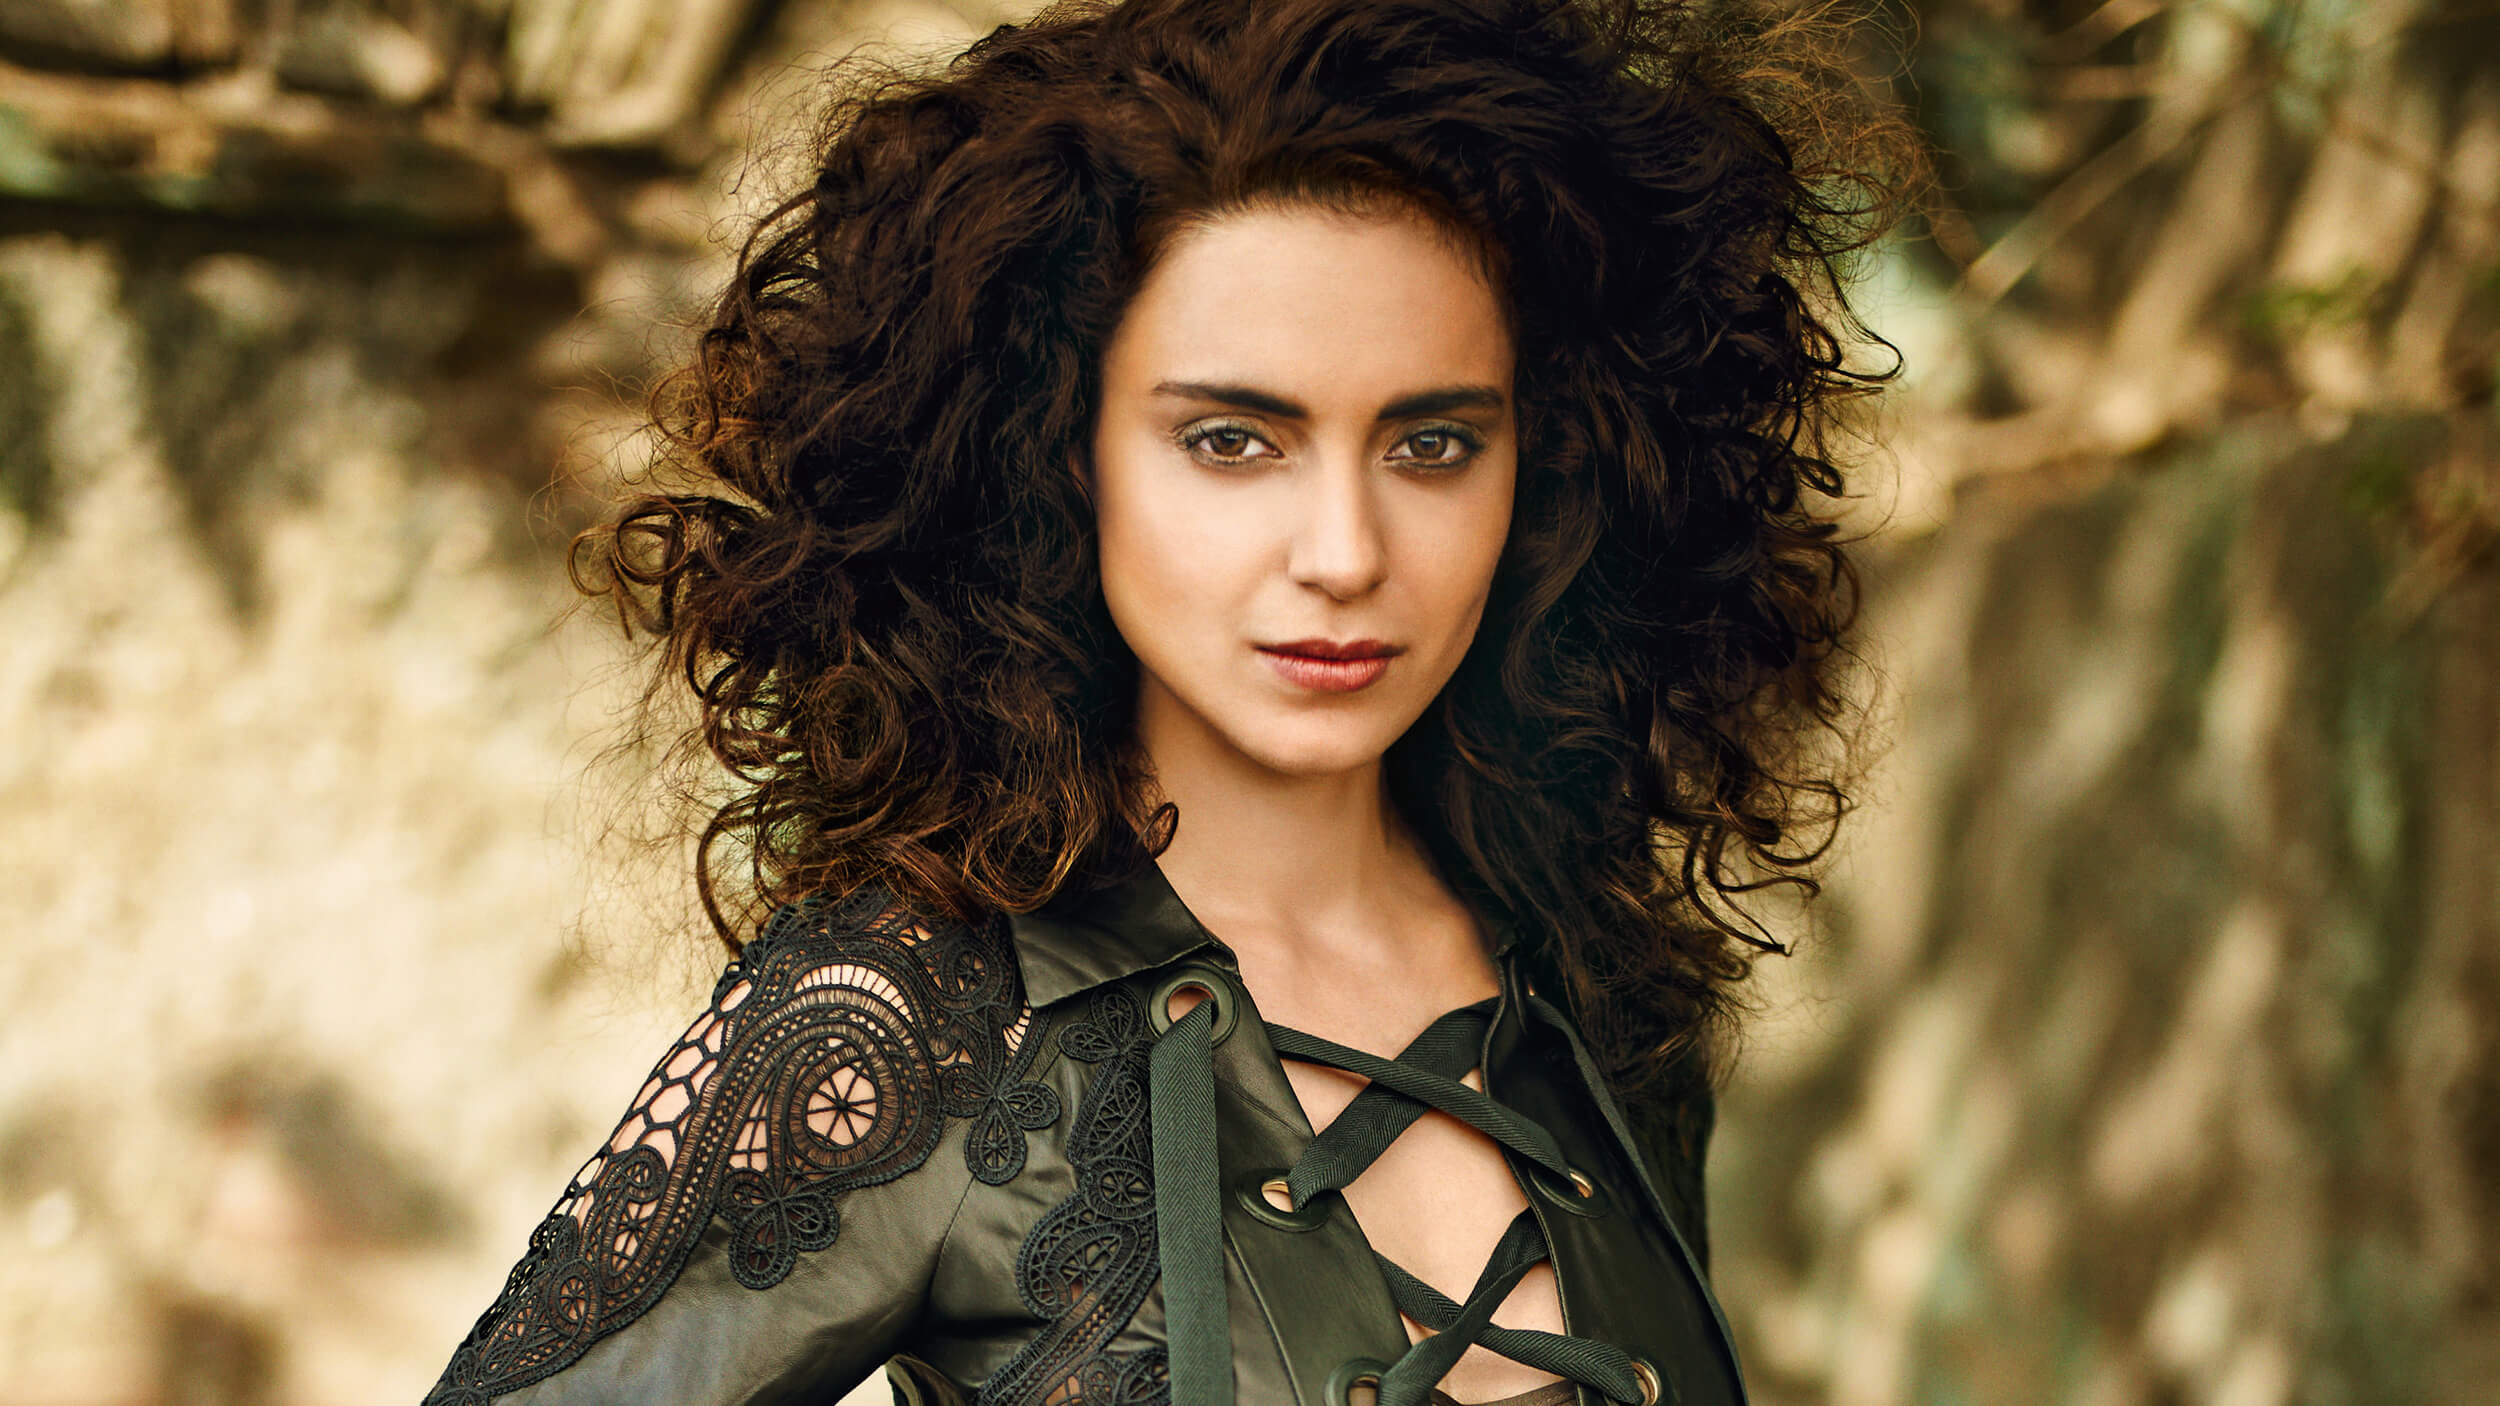 Kangana Ranaut Age, Sister, Image, Latest News, Net Worth, Biography, Husband, Height, Awards, Photos, Date Of Birth, Twitter, Instagram, Wiki (14)